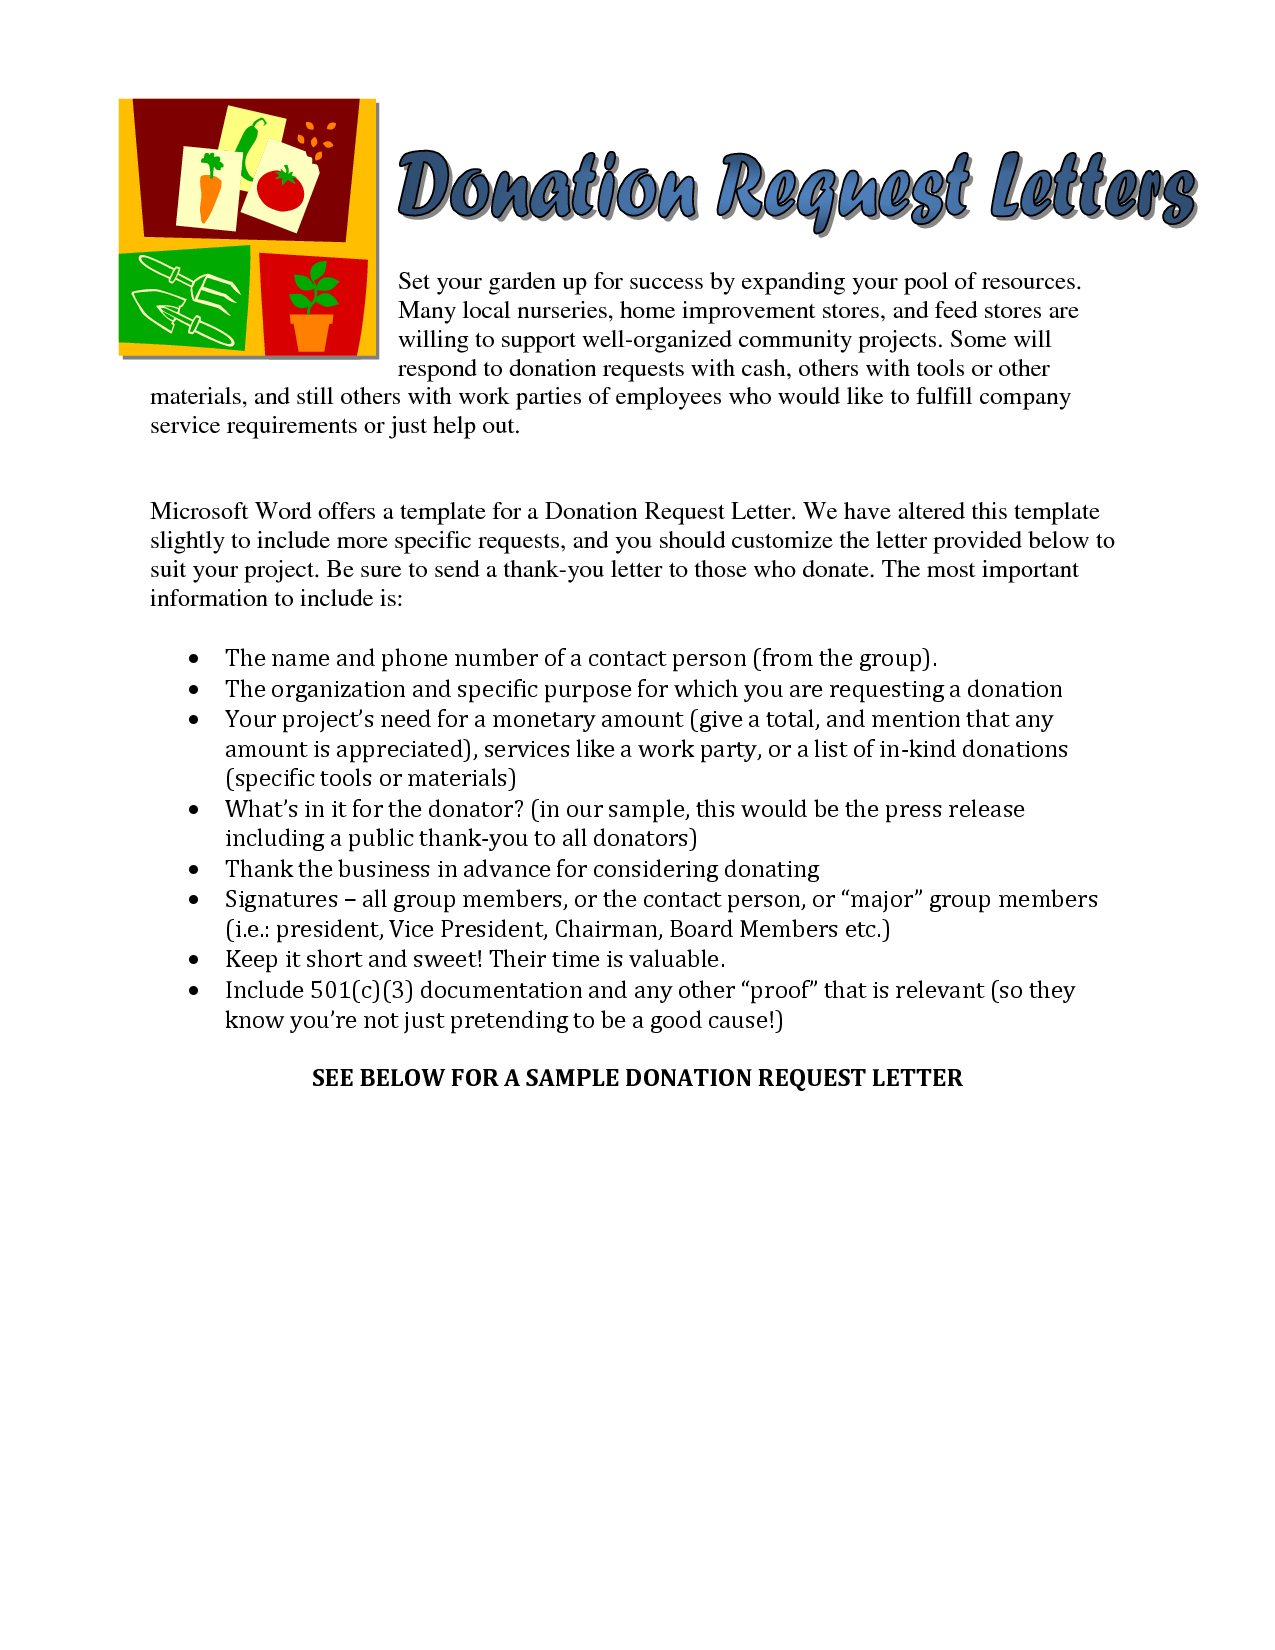 Sample Church Donation Letter | Sample Donation Request